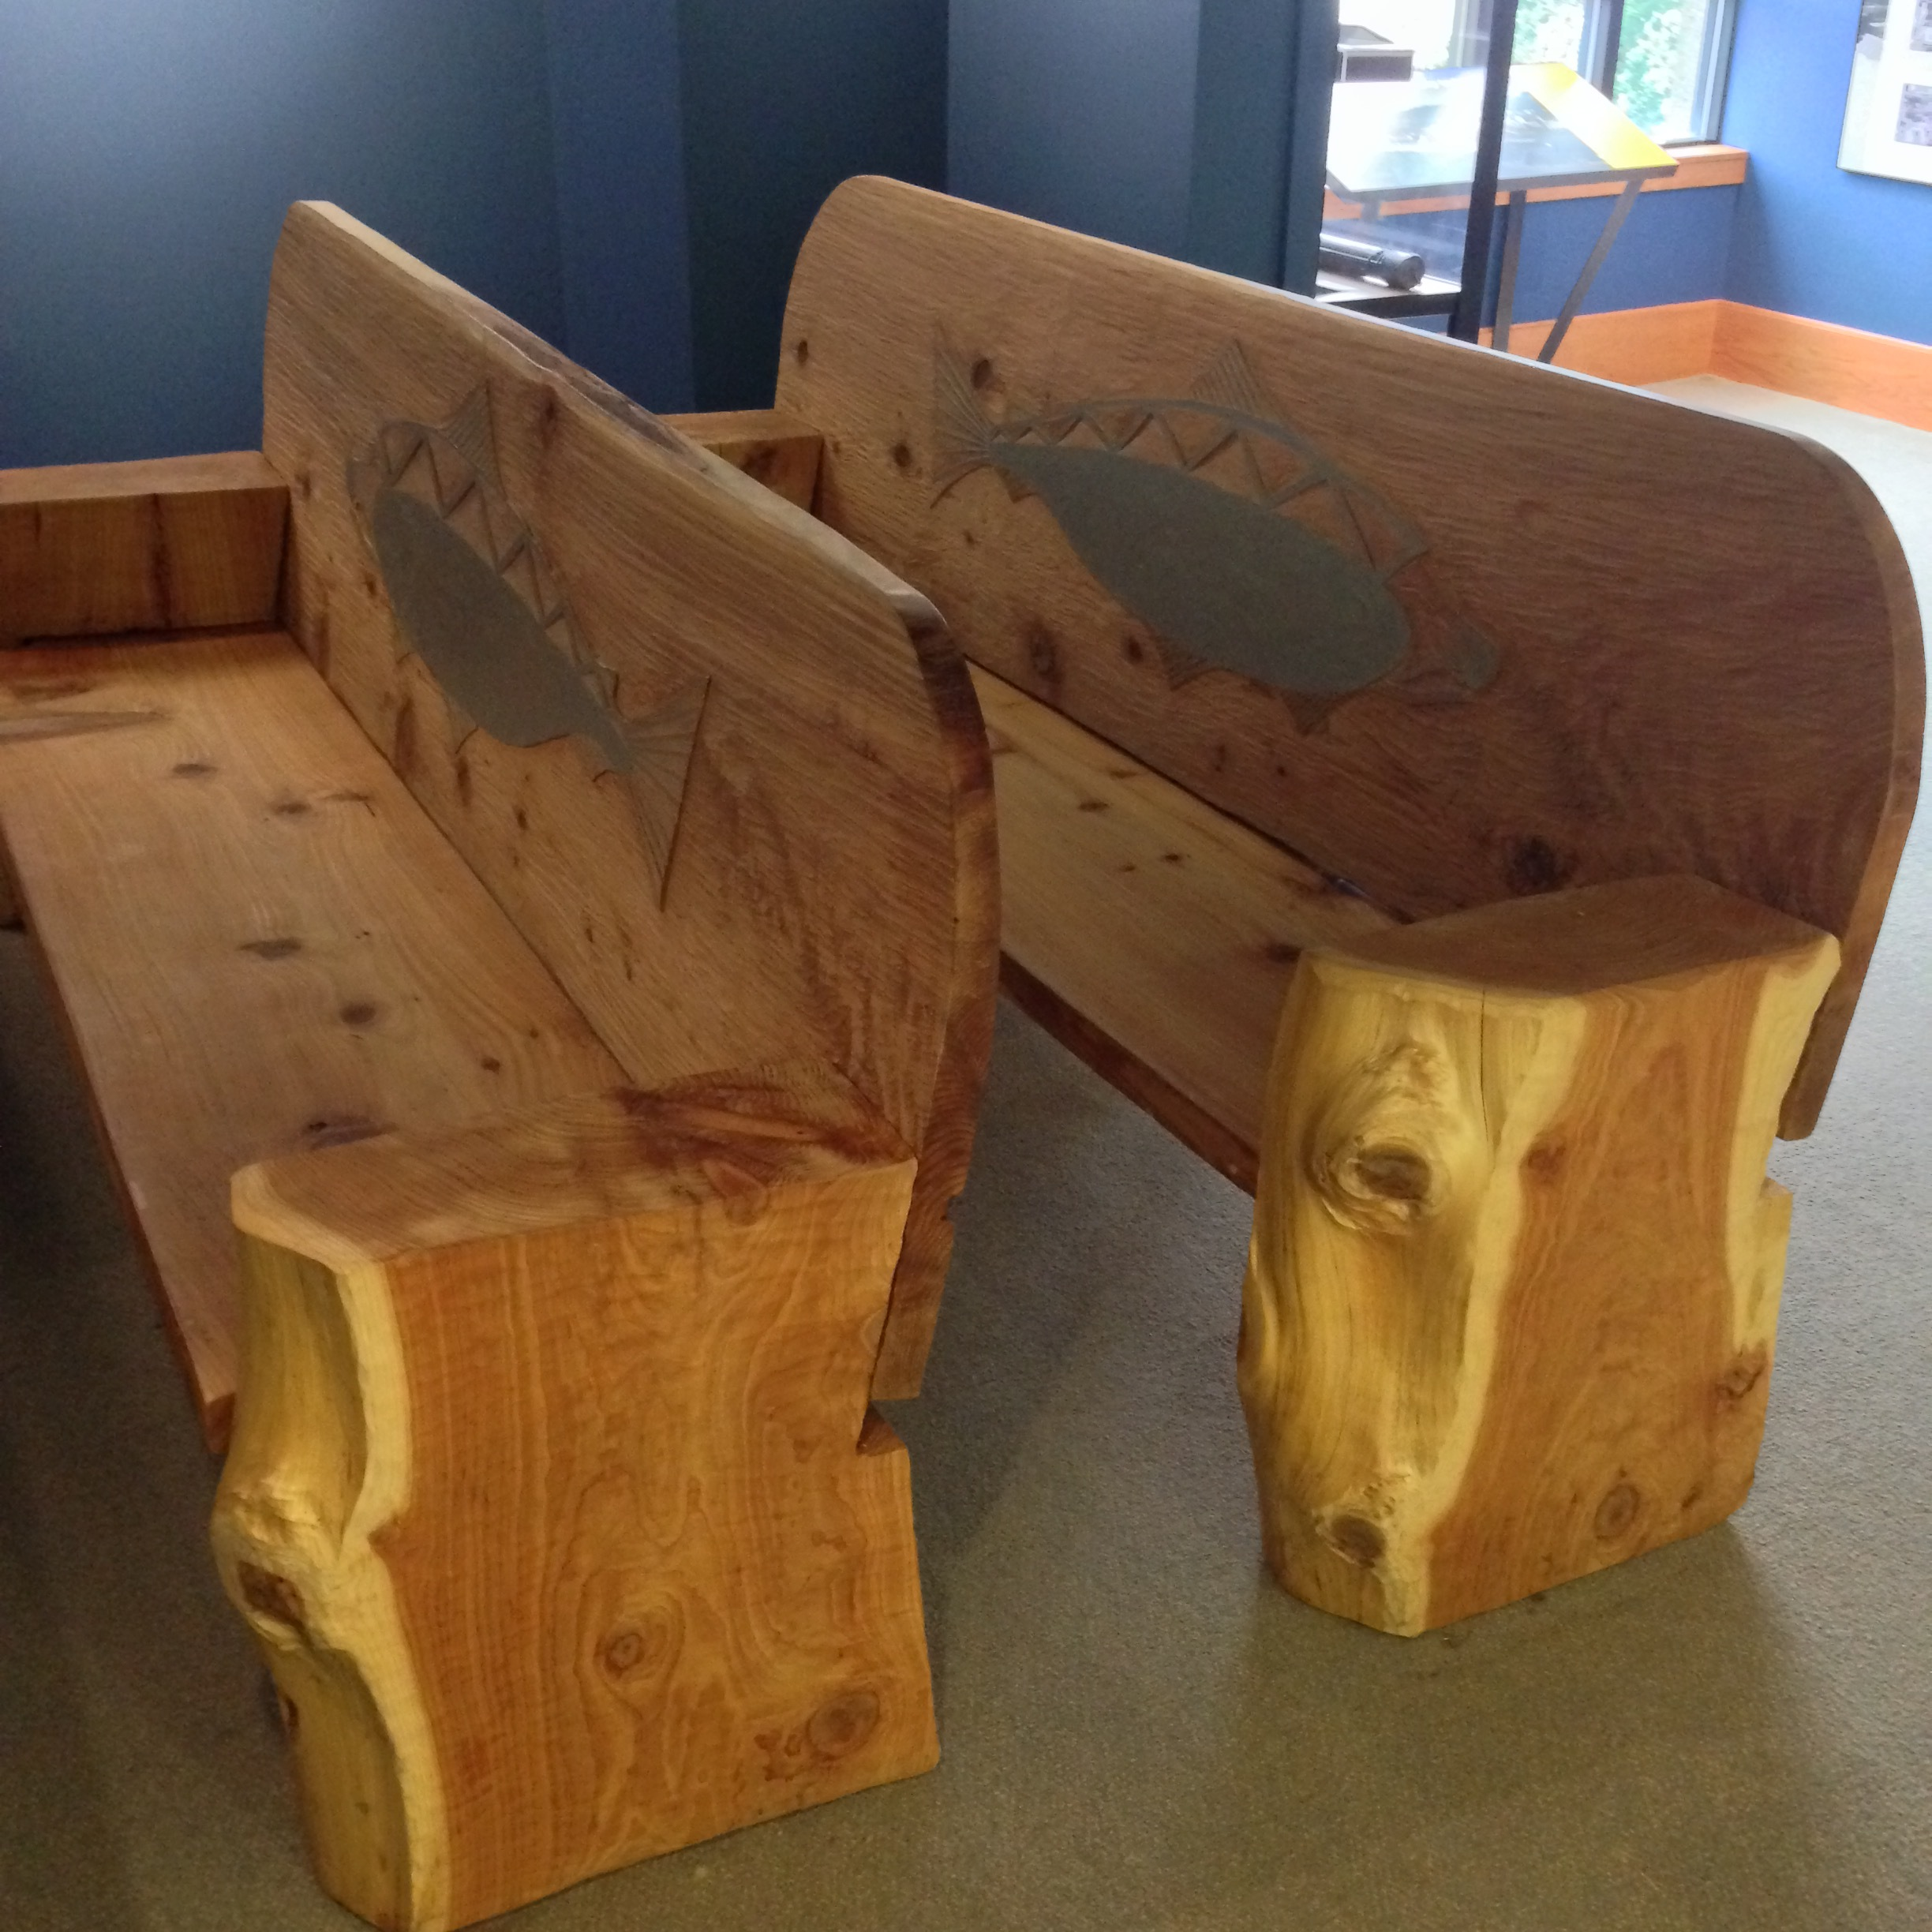 Sit on hand-carved benches while enjoying short films on the Willamette Falls (benches gifted by the Confederated Tribes of the Grand Ronde).